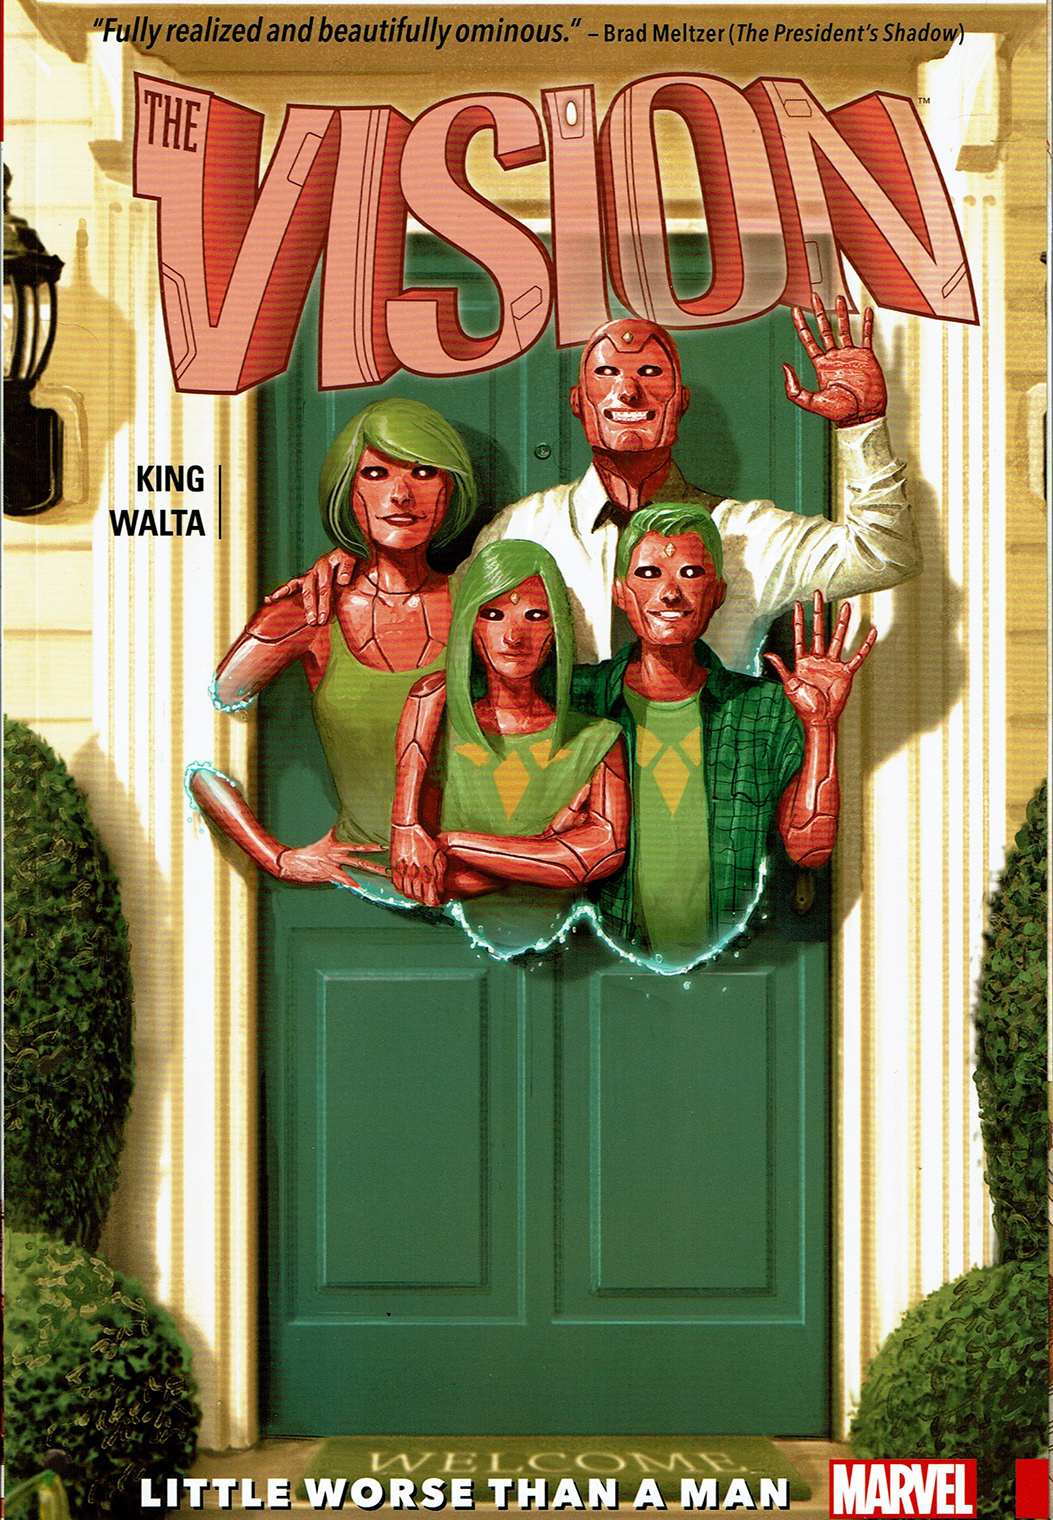 Vision, of the Avengers, once built an android family and tried to live in the suburbs.